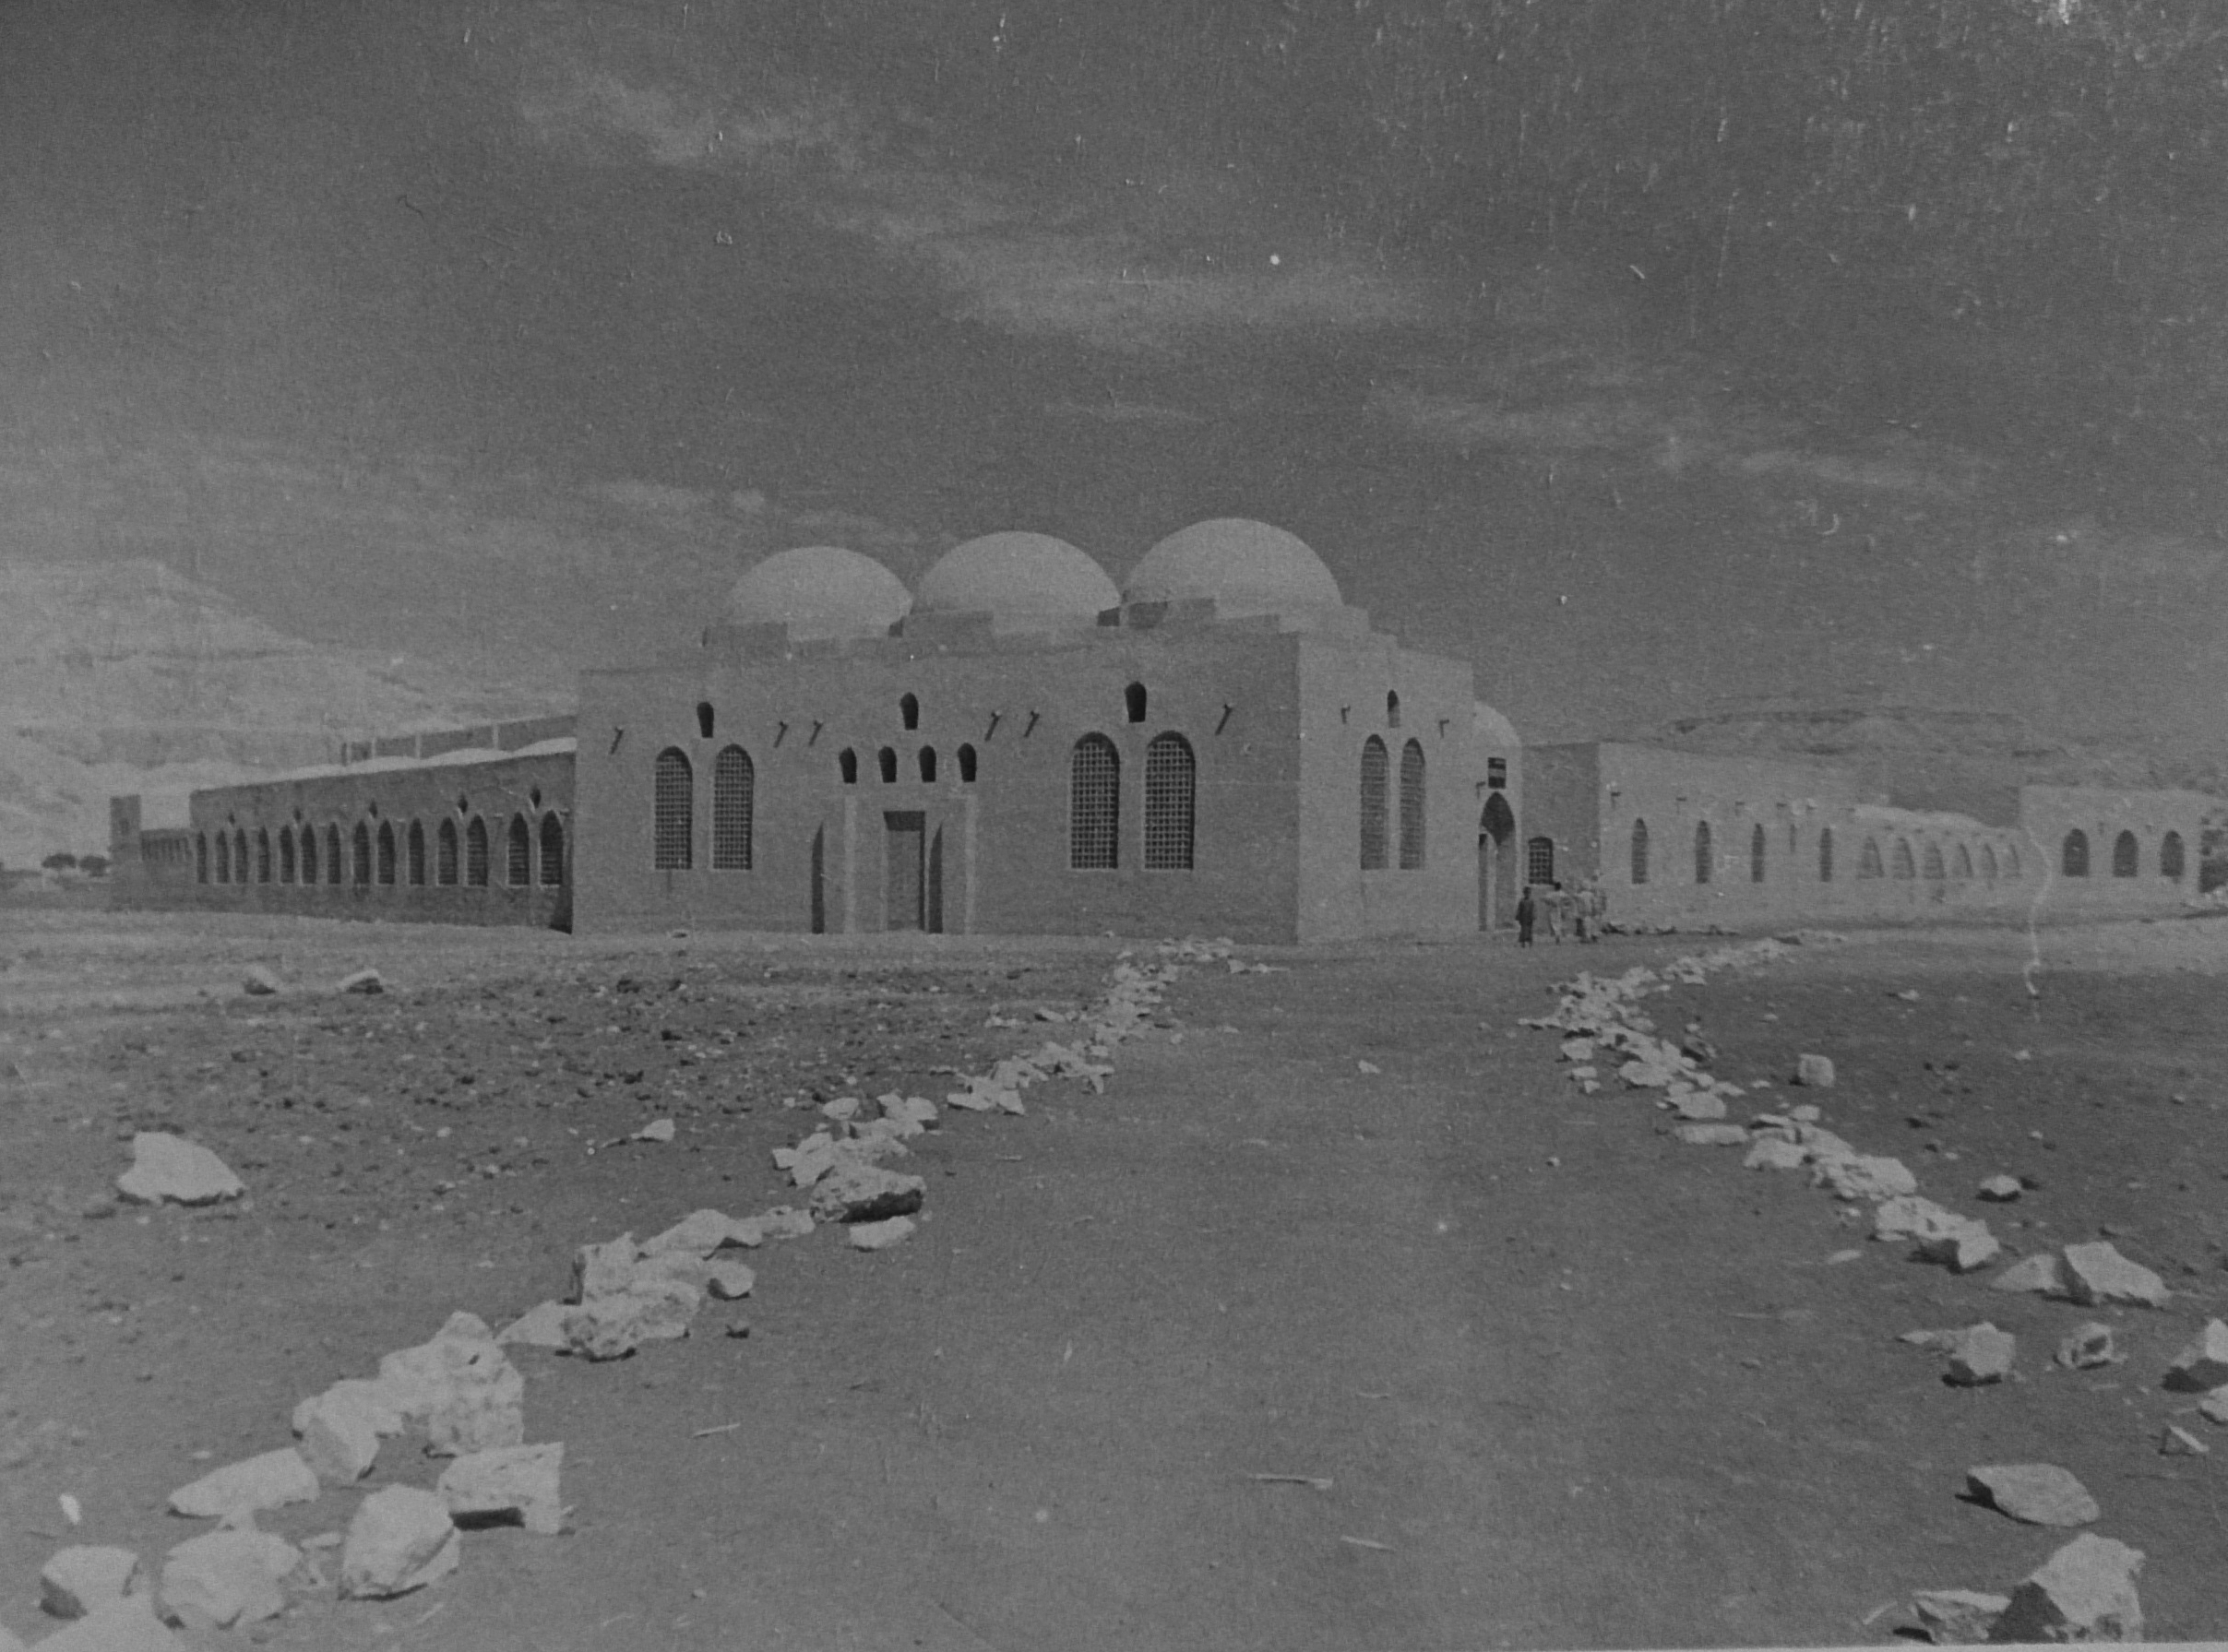 New Gourna, Luxor, Egypt, ca. 1950. Courtesy of Hassan Fathy Archives, Rare Books and Special Collections Library, American University in Cairo.